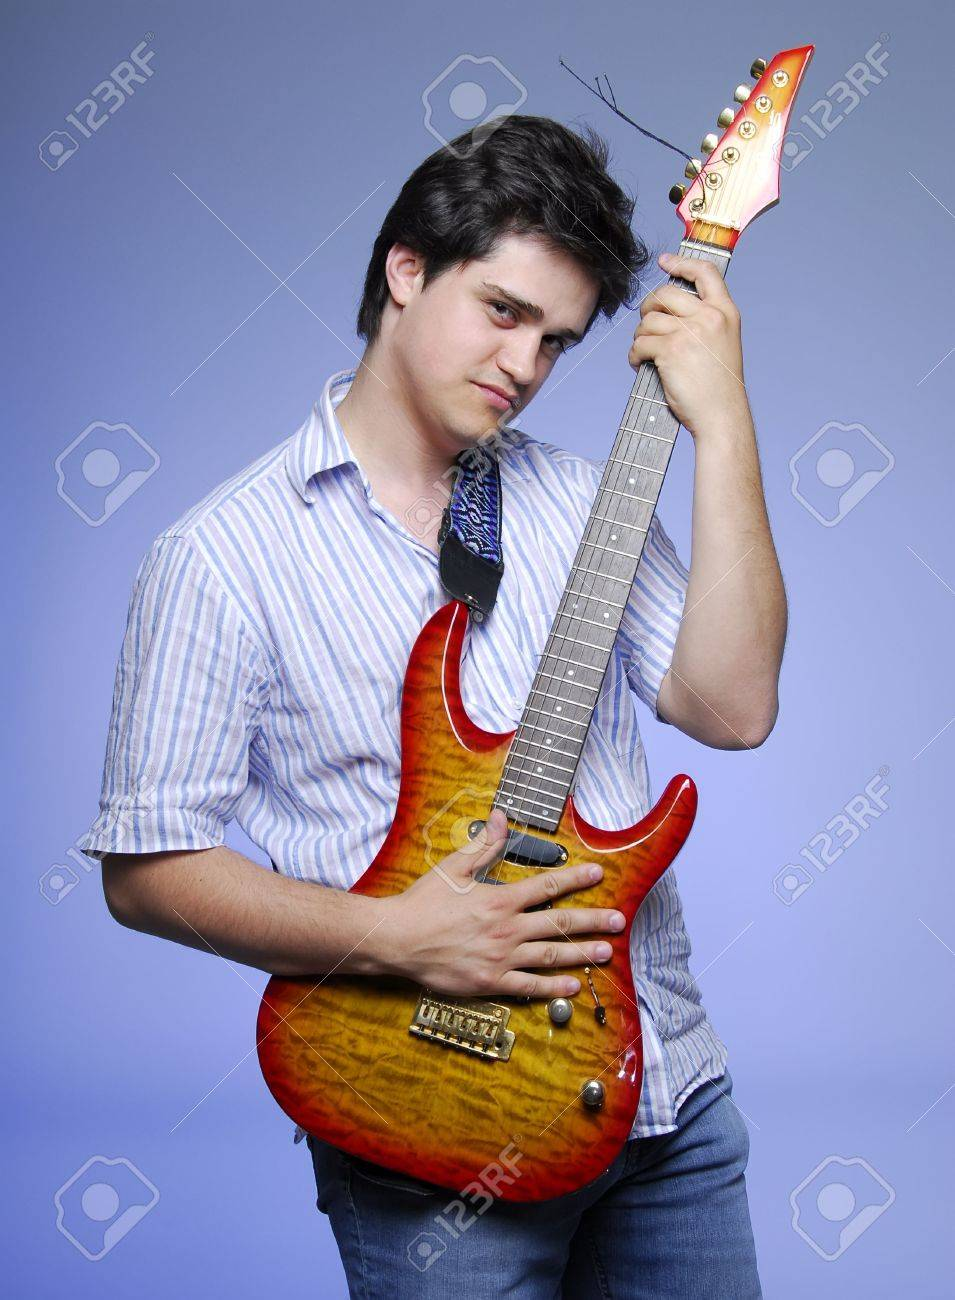 style boy with electro guitar Stock Photo - 5960033